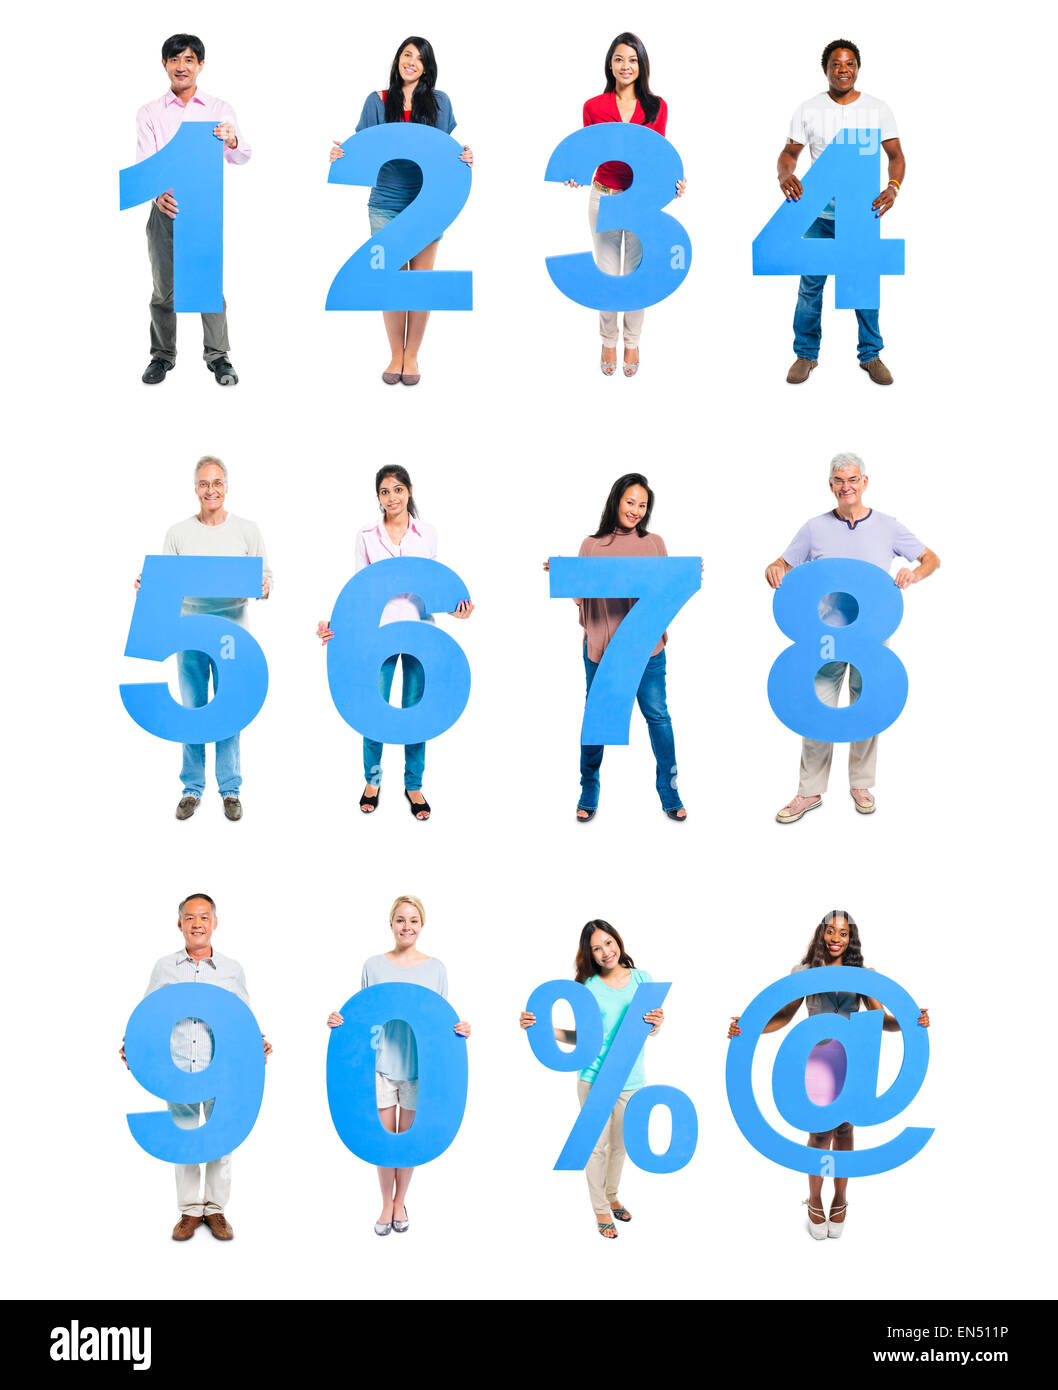 Group of People Holding Blue Numeral in a Row - Stock Image